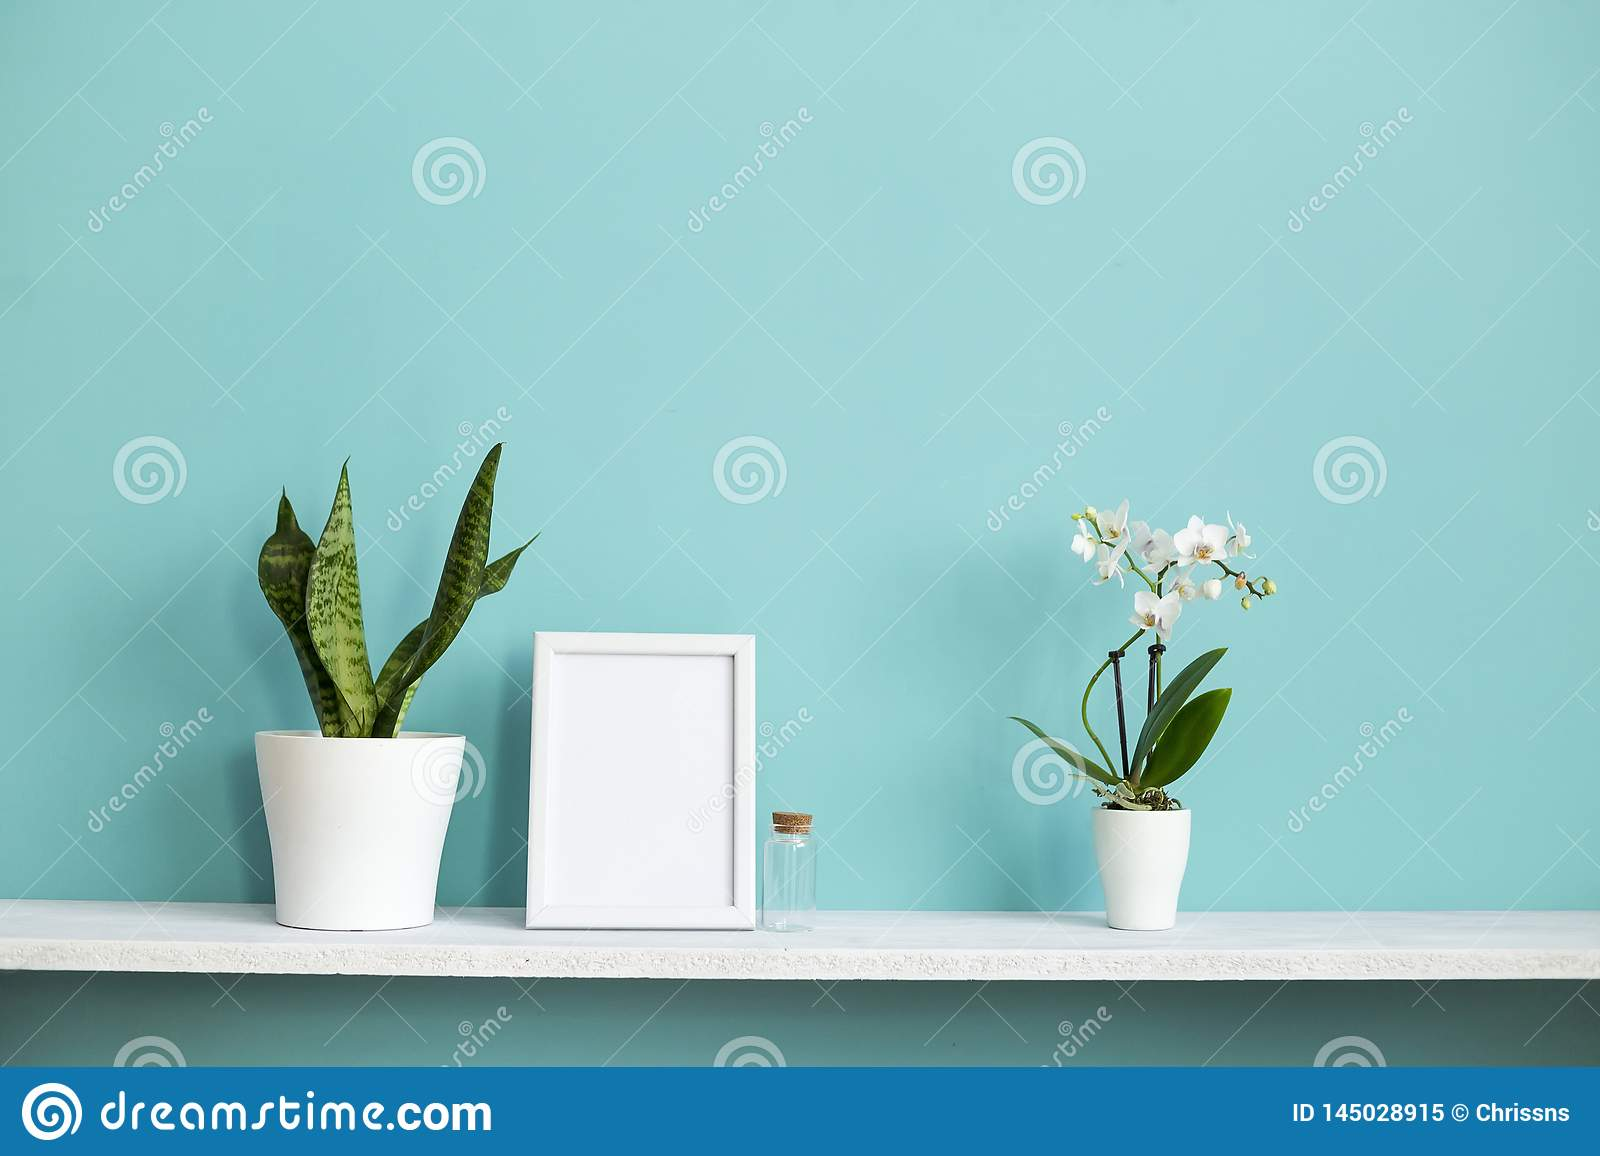 Picture frame mockup. White shelf against pastel turquoise wall with potted orchid and snake plant